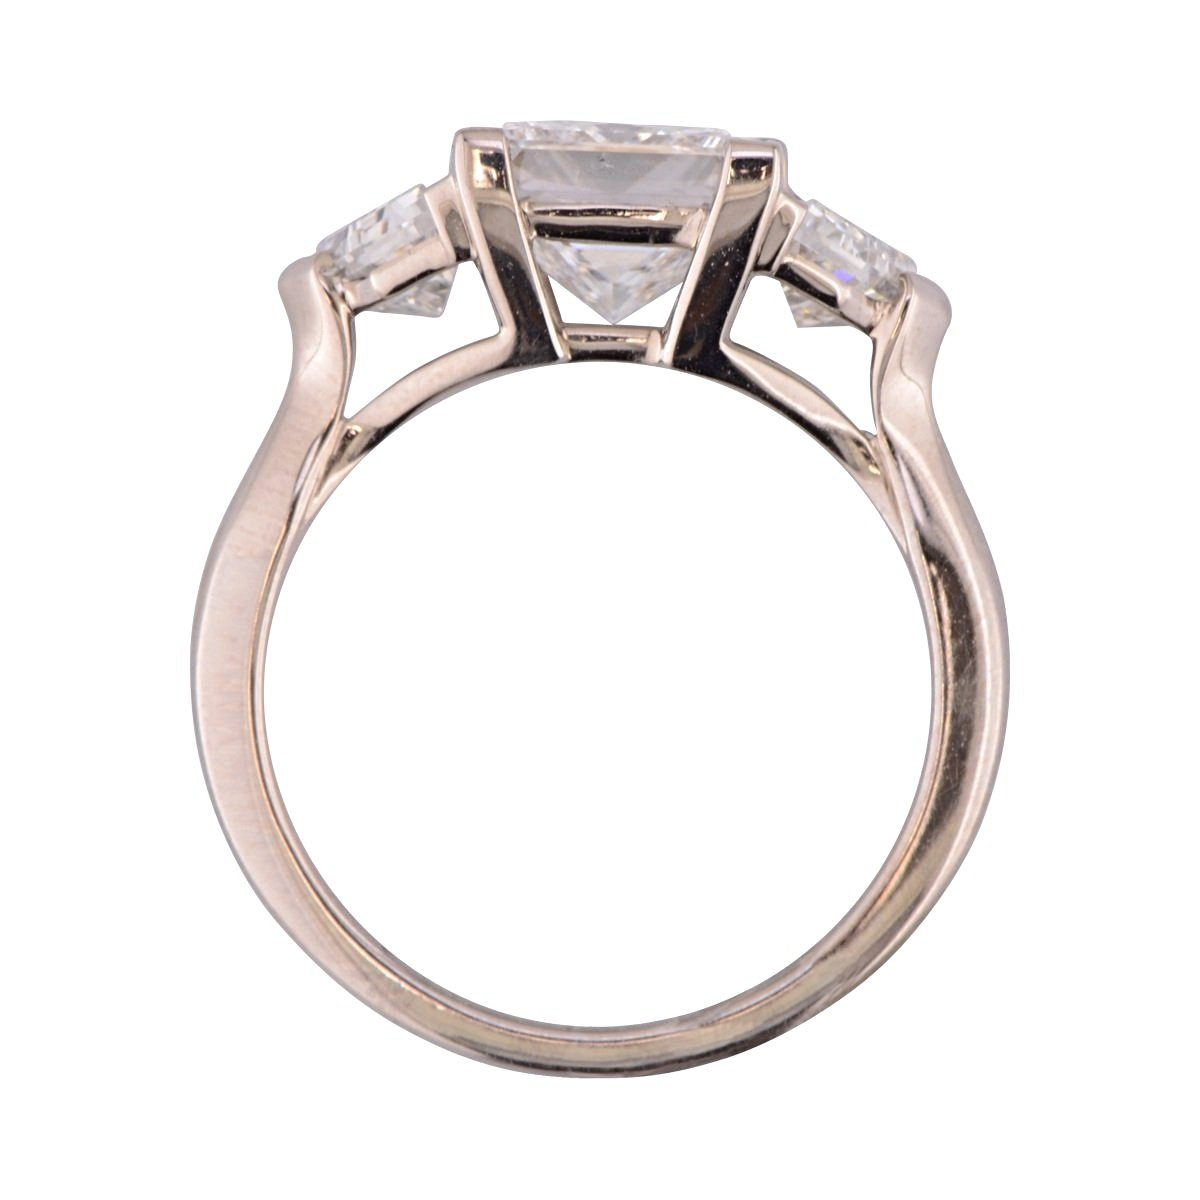 'Florin' Princess Cut Diamond three stone ring.